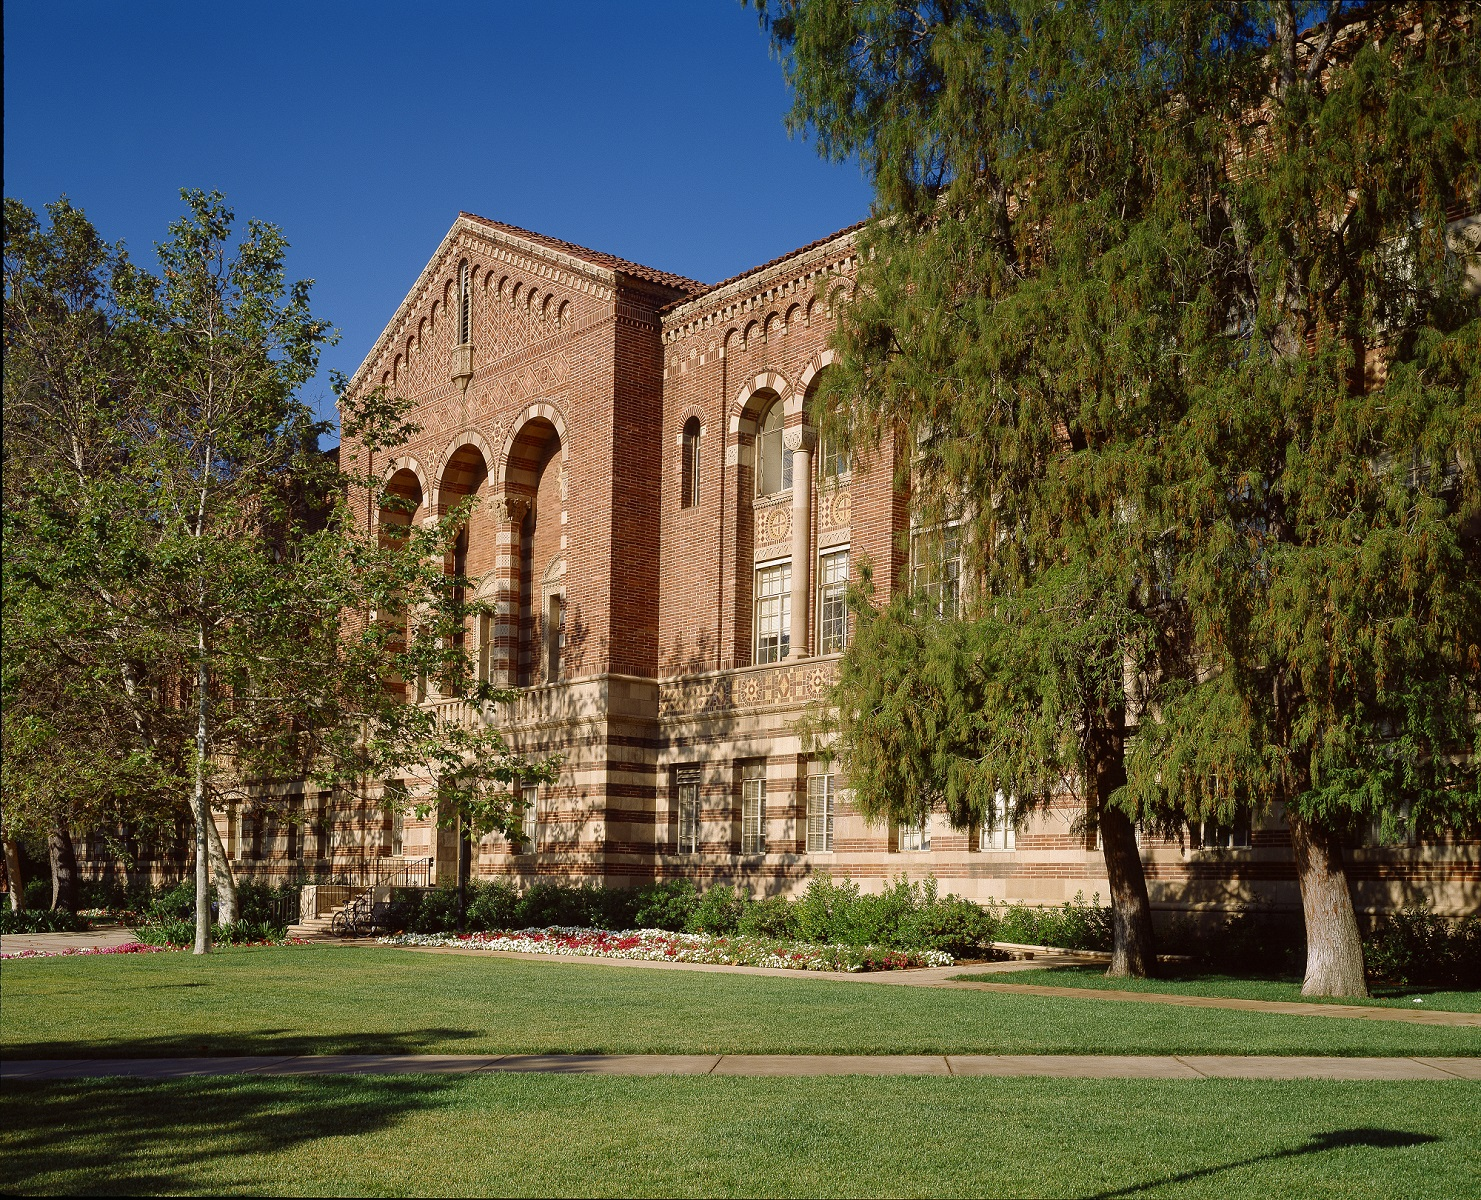 UCLA Language and Literacy Research Group